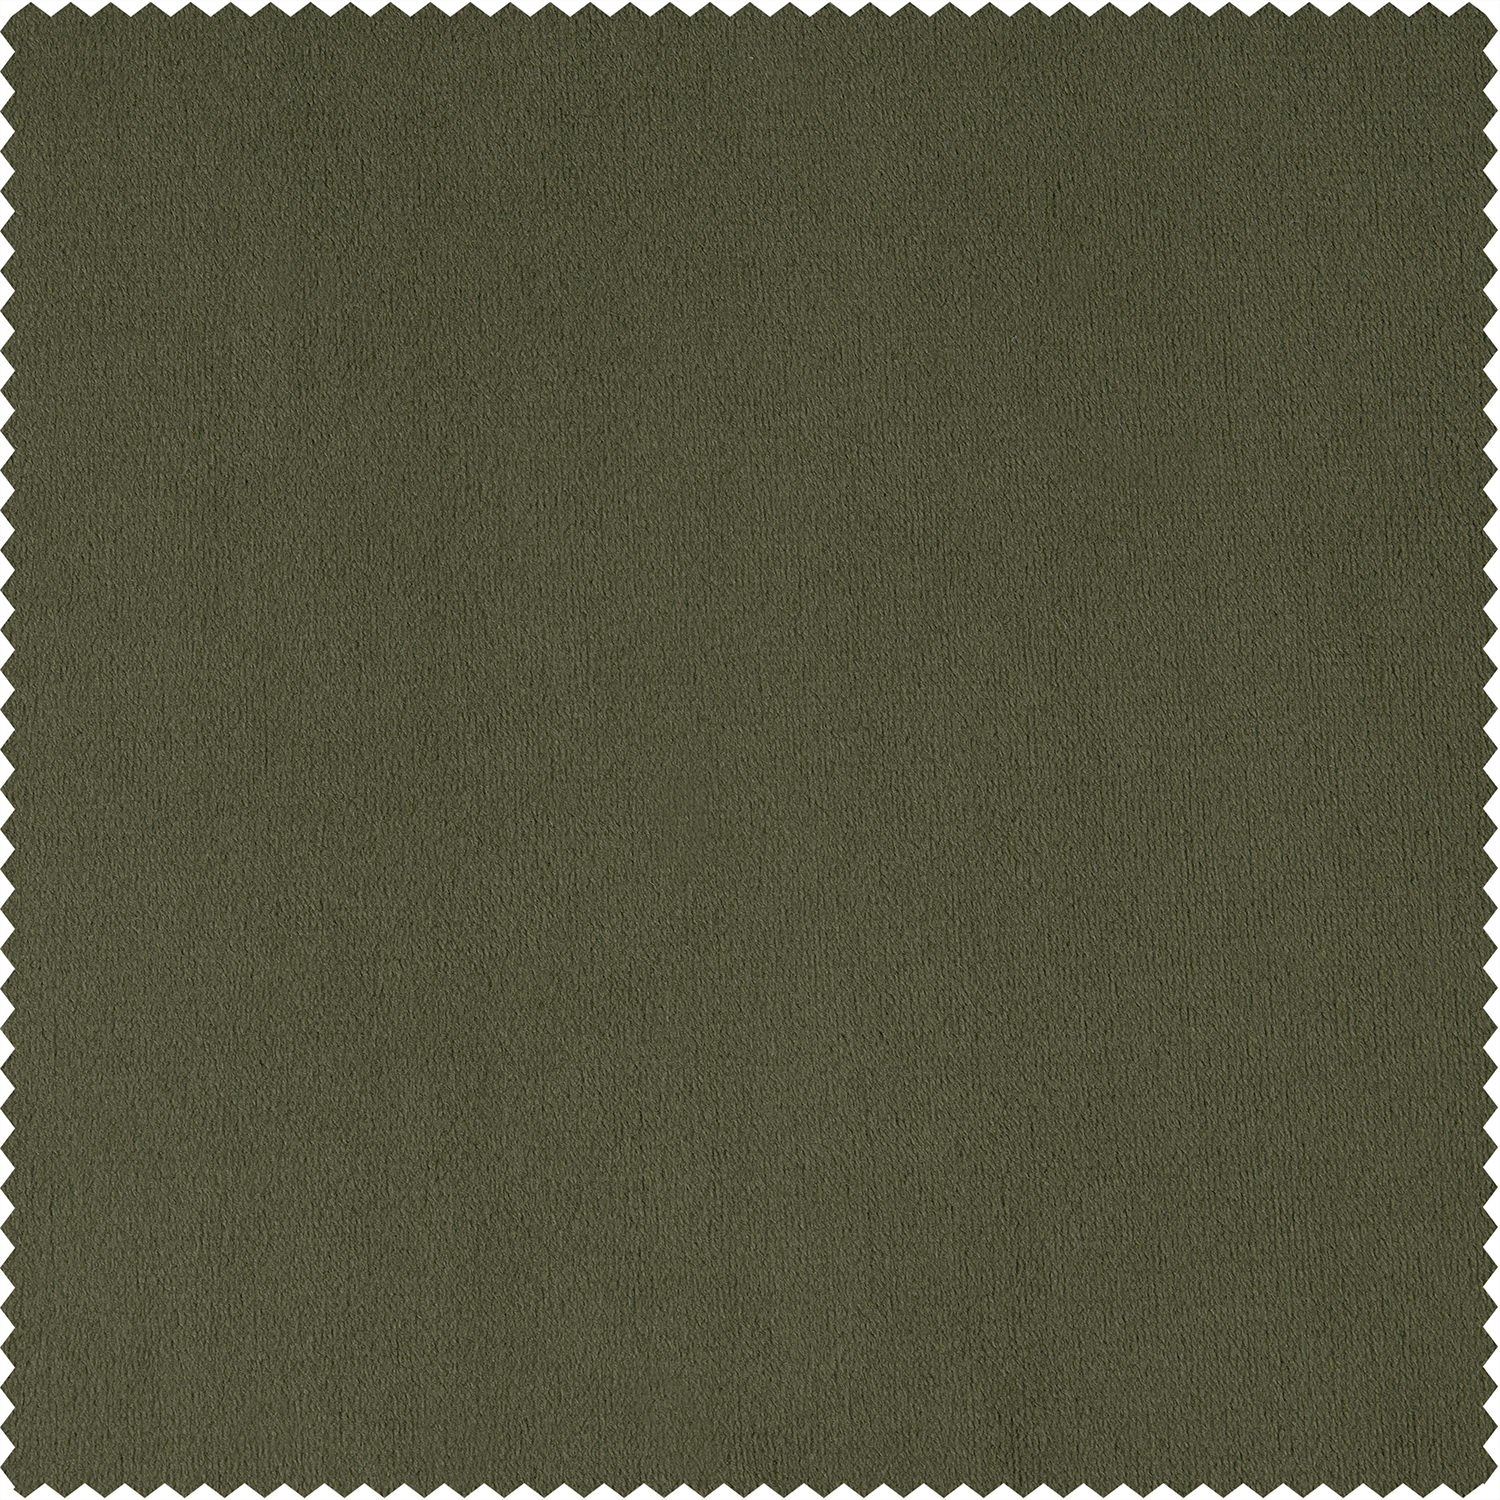 Signature Hunter Green Velvet Swatch